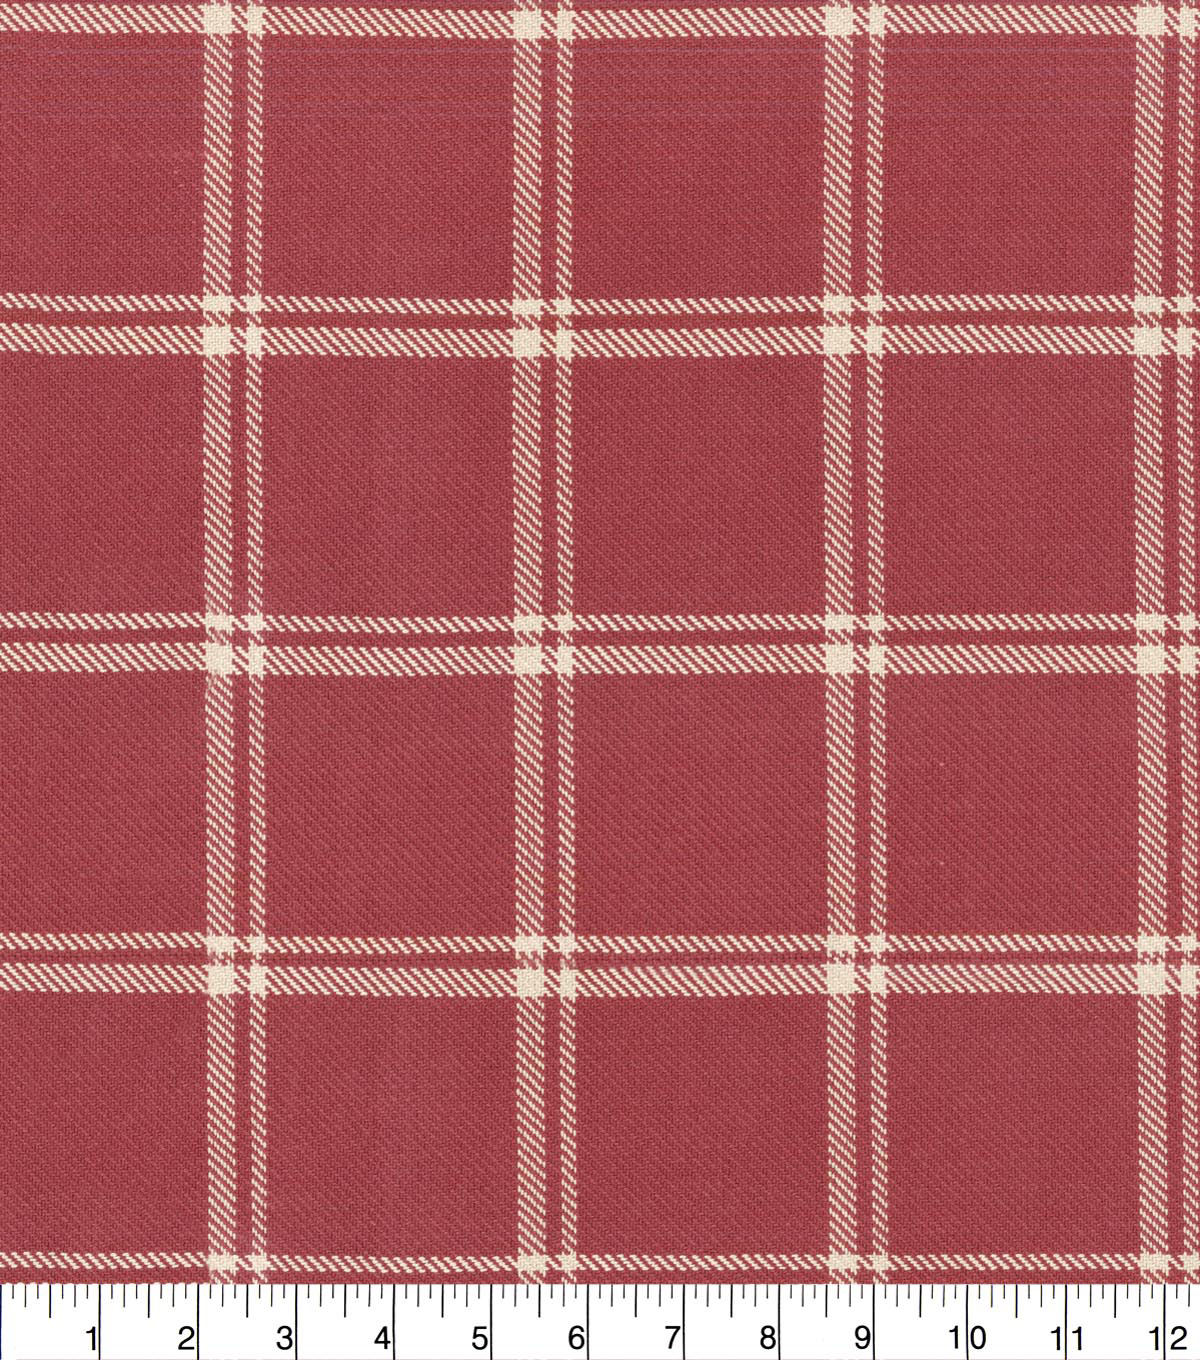 Waverly Upholstery Fabric 54''-Cinnabar Bloomsbury Plaid